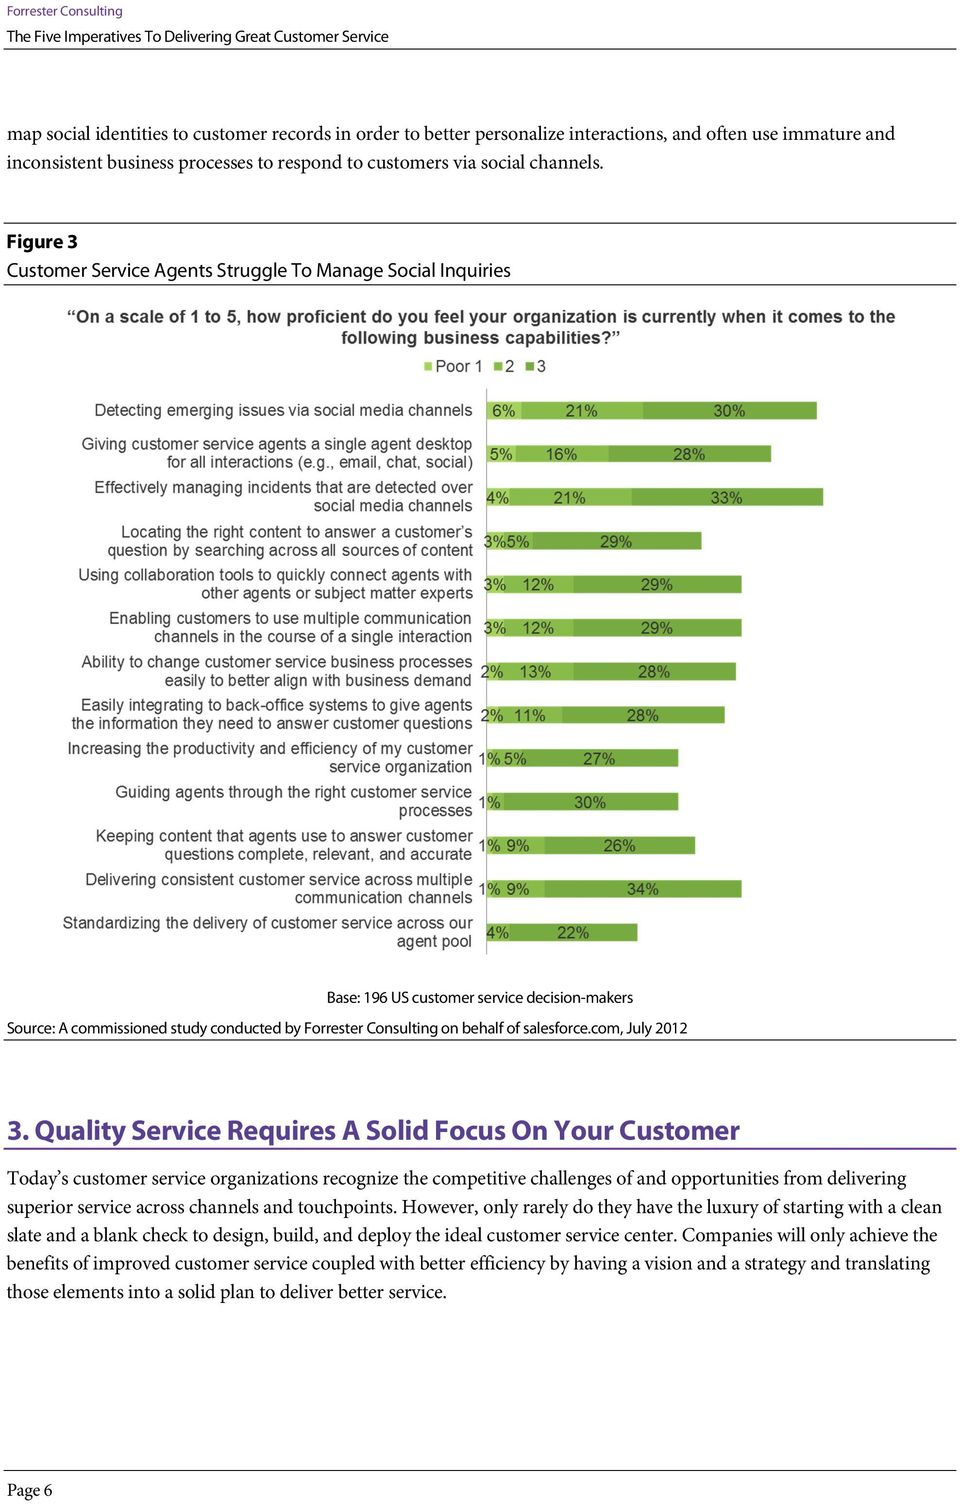 Quality Service Requires A Solid Focus On Your Customer Today s customer service organizations recognize the competitive challenges of and opportunities from delivering superior service across